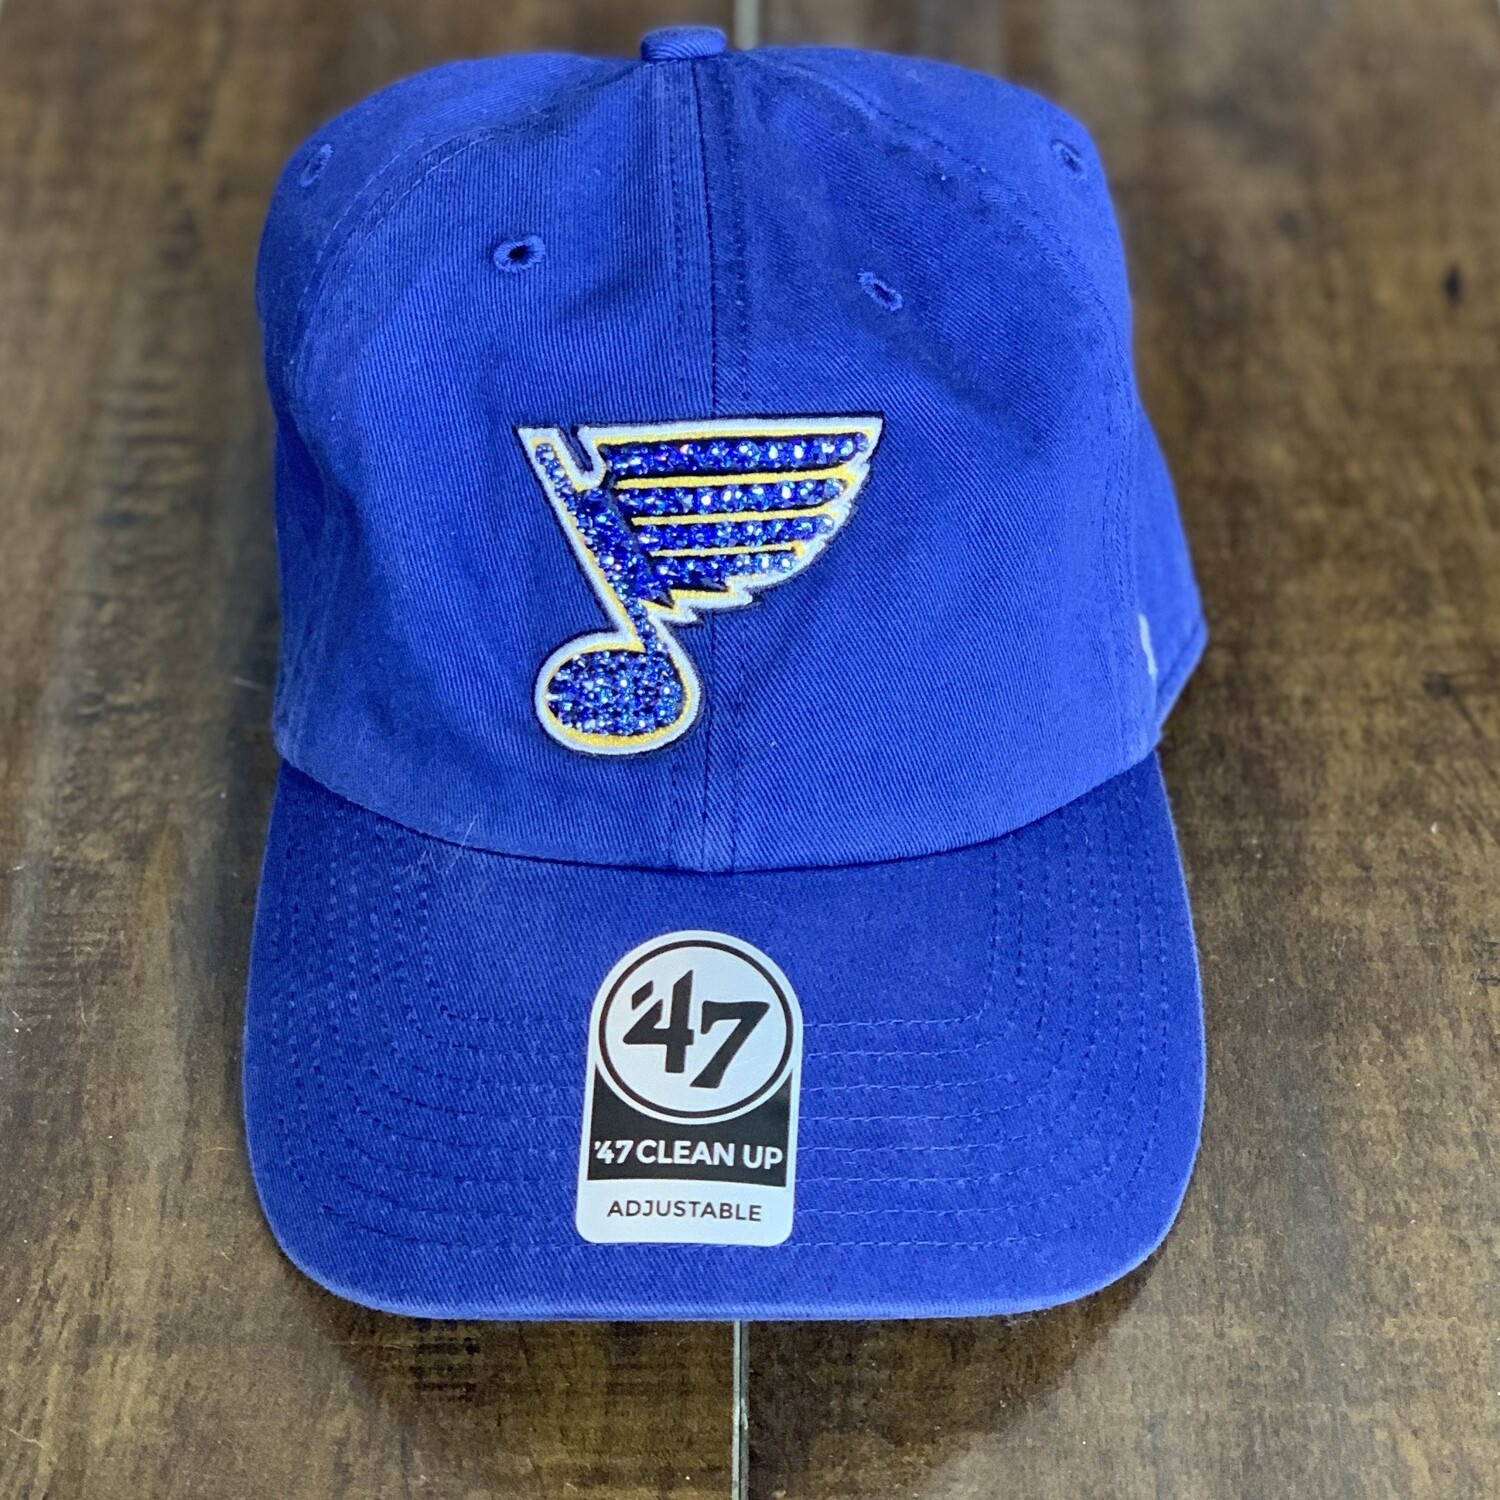 Blue '47 Hat W/ Blue Crystal